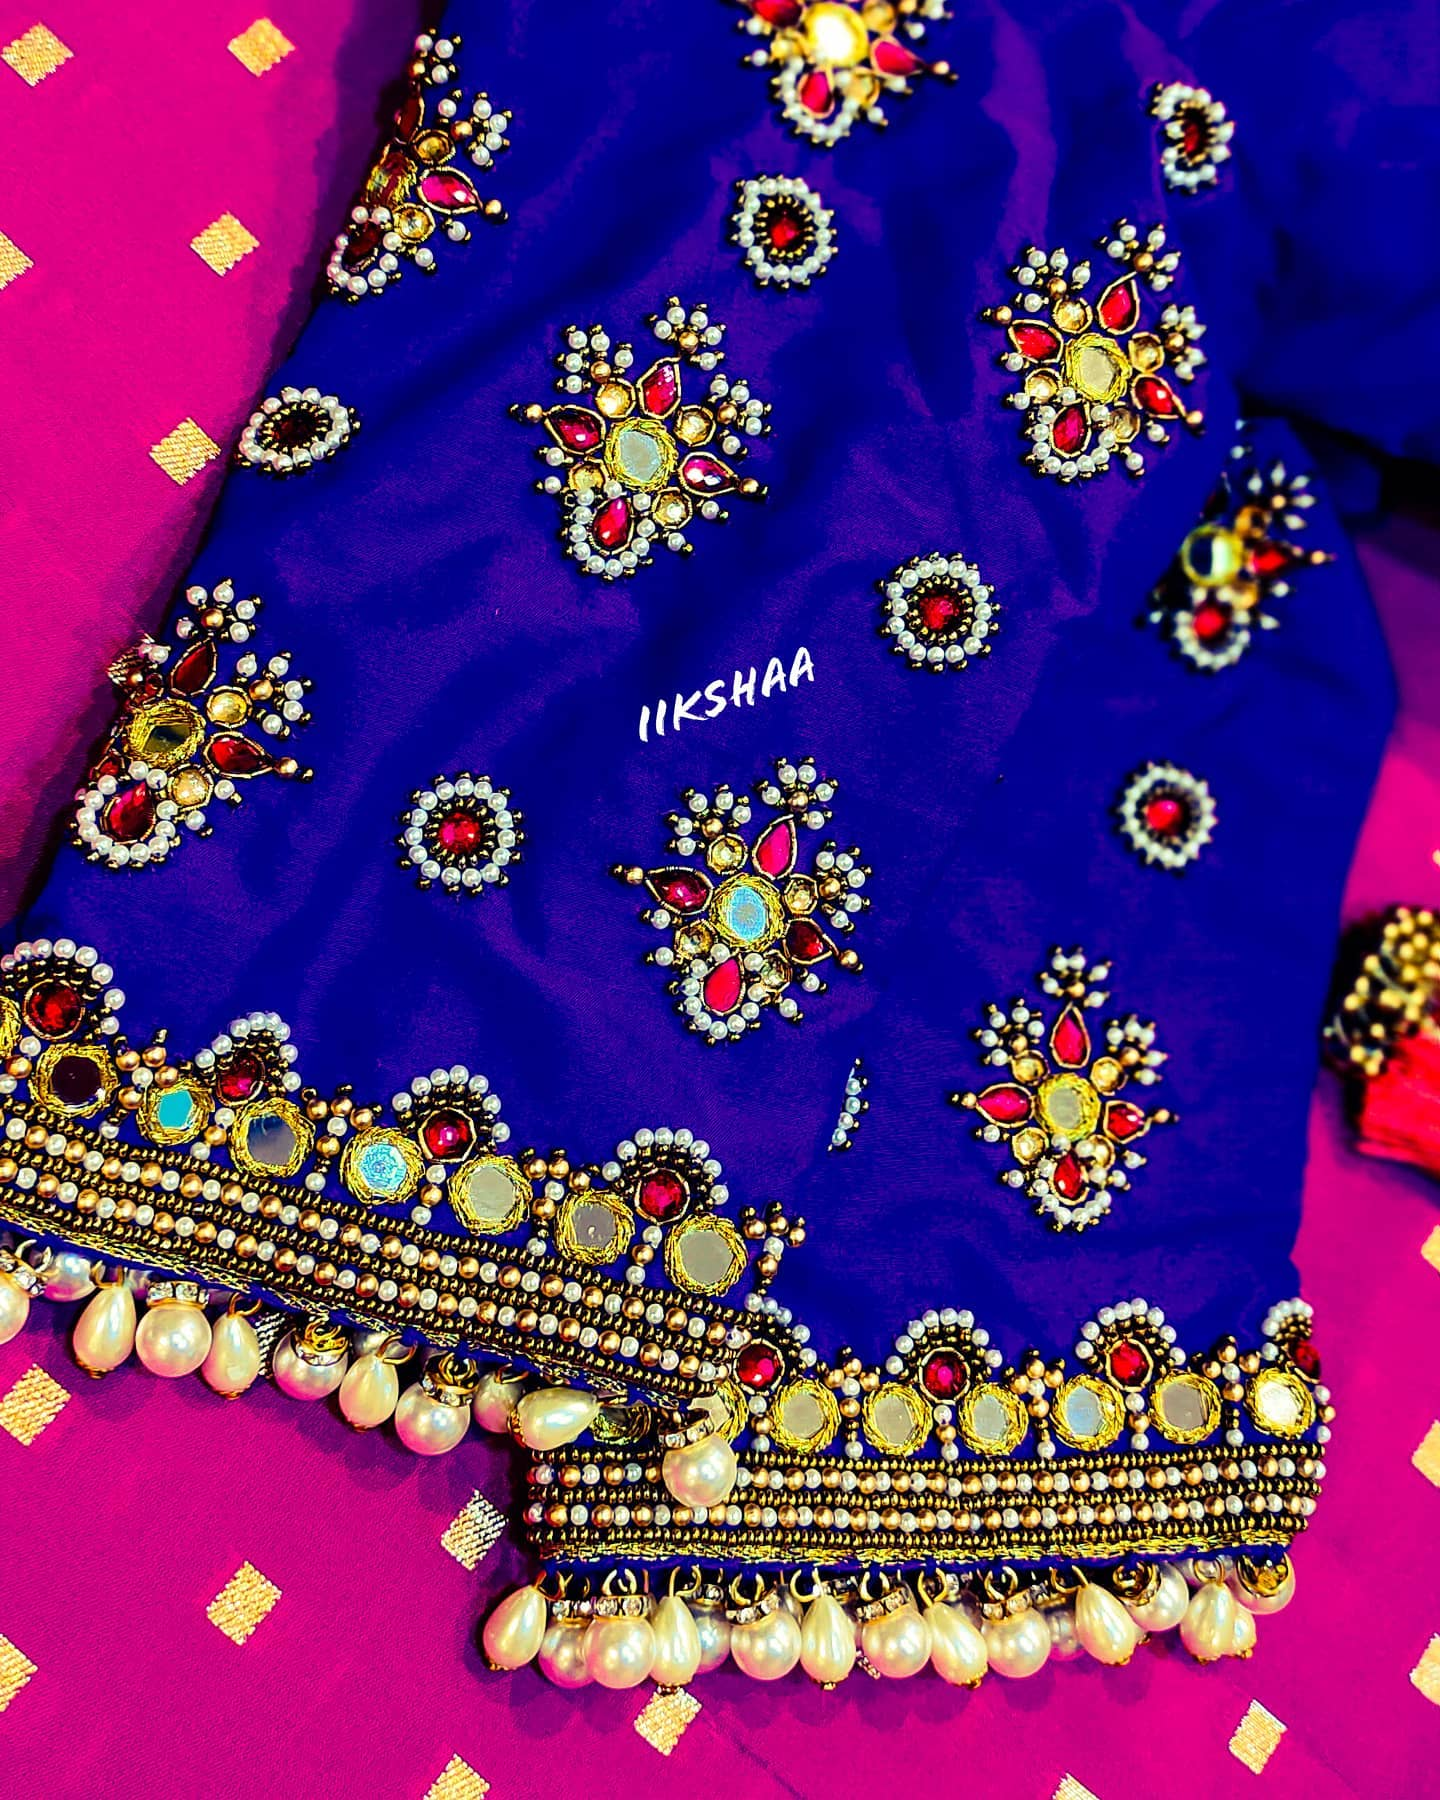 Stunning blue color bridal blouse with bead and mirror aari wrok. 2021-02-04